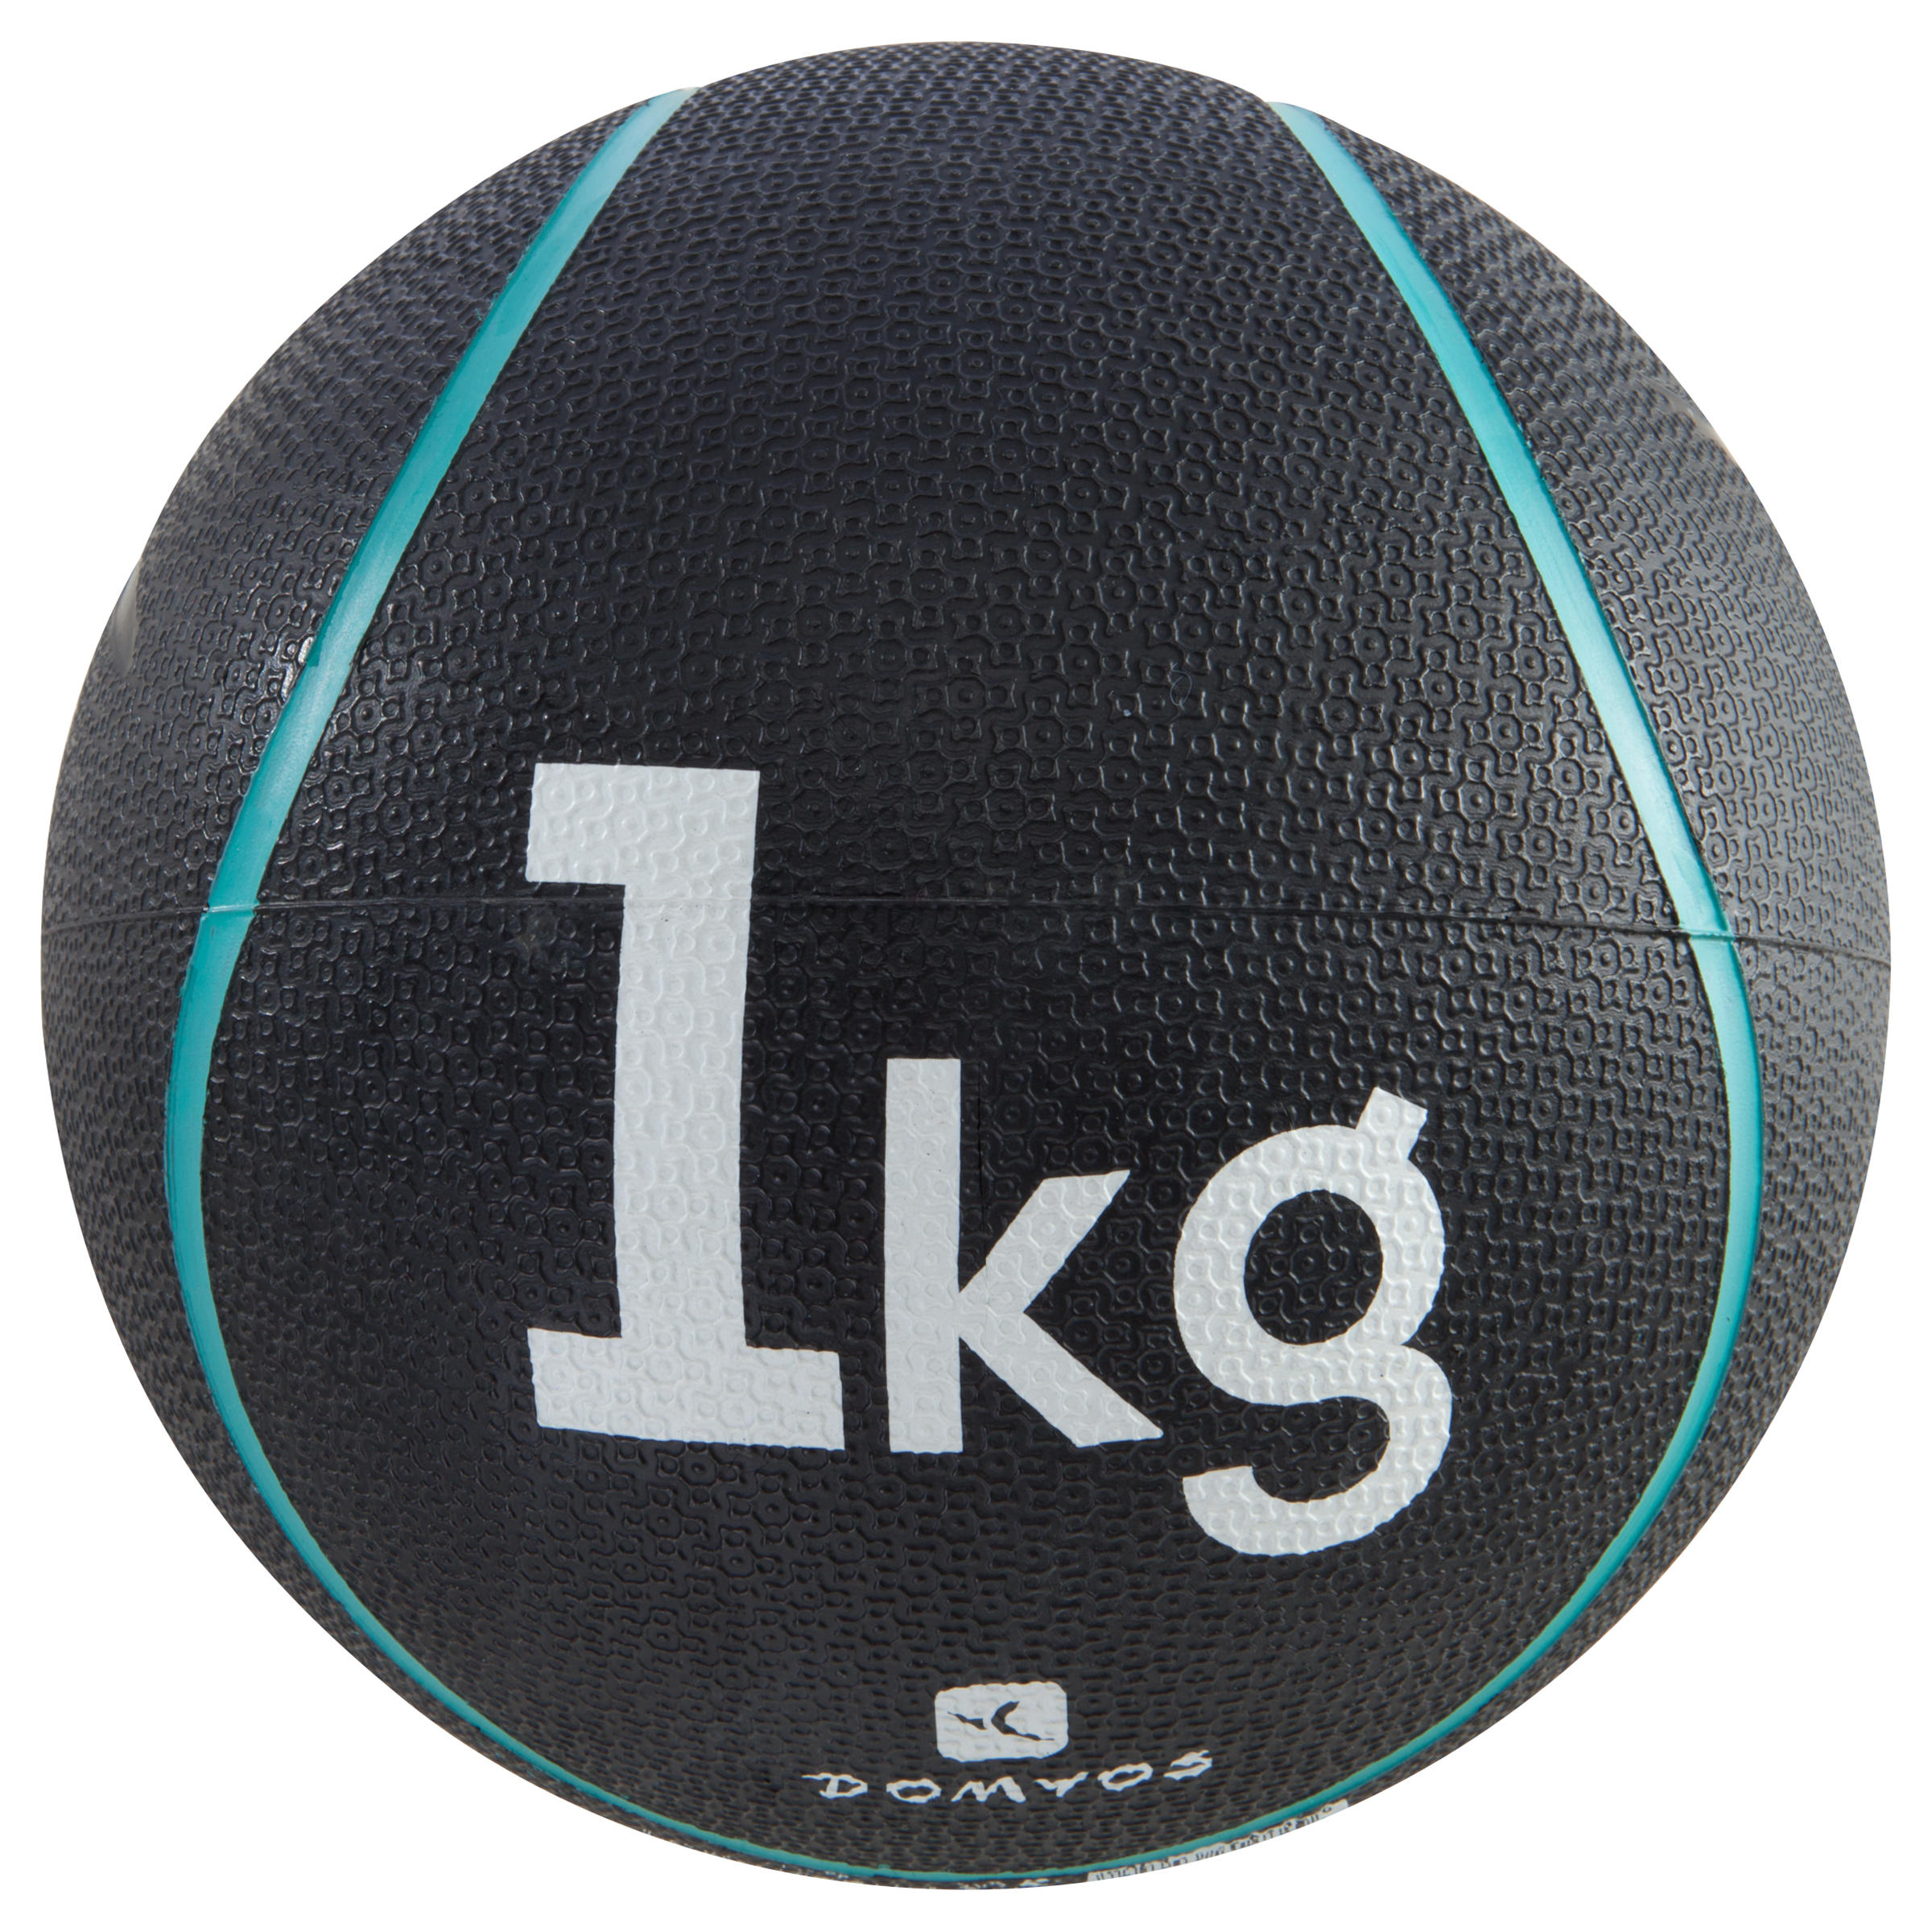 BALLON LESTÉ TONIFICATION PILATES 1 KG